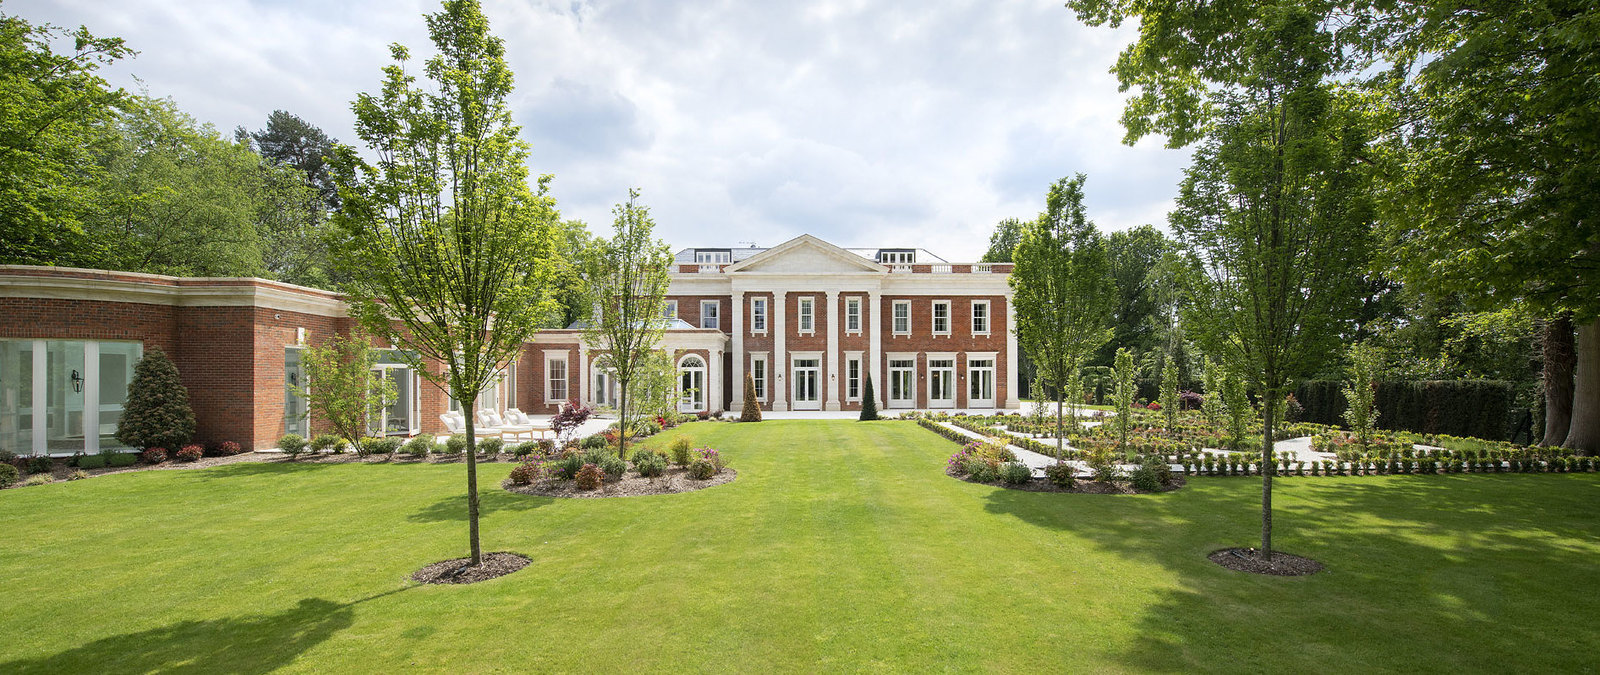 hills-end-sunningdale-our-work-private-client-ascot-design-view5.jpg